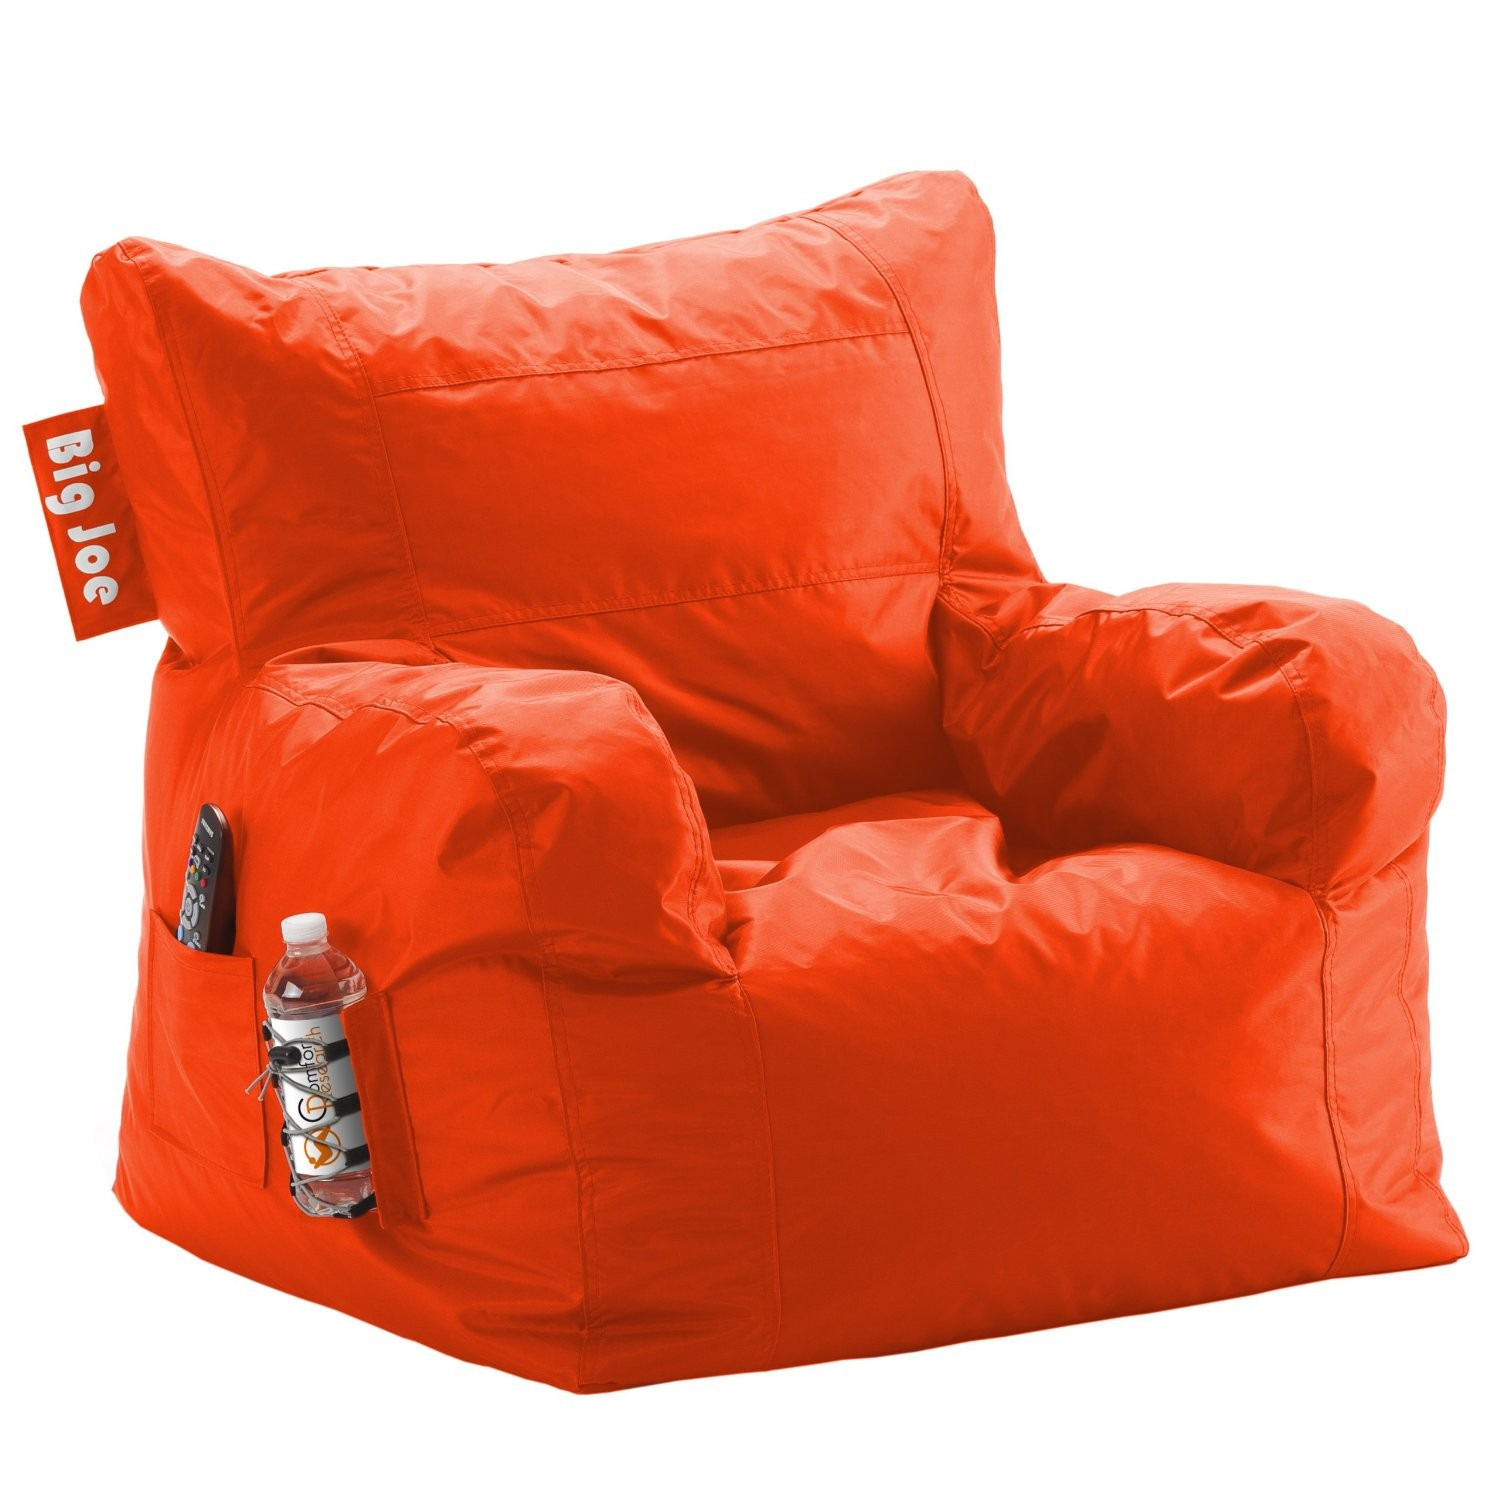 big joe bean bag chair pink small leather accent chairs 15 must haves for living in a dorm room